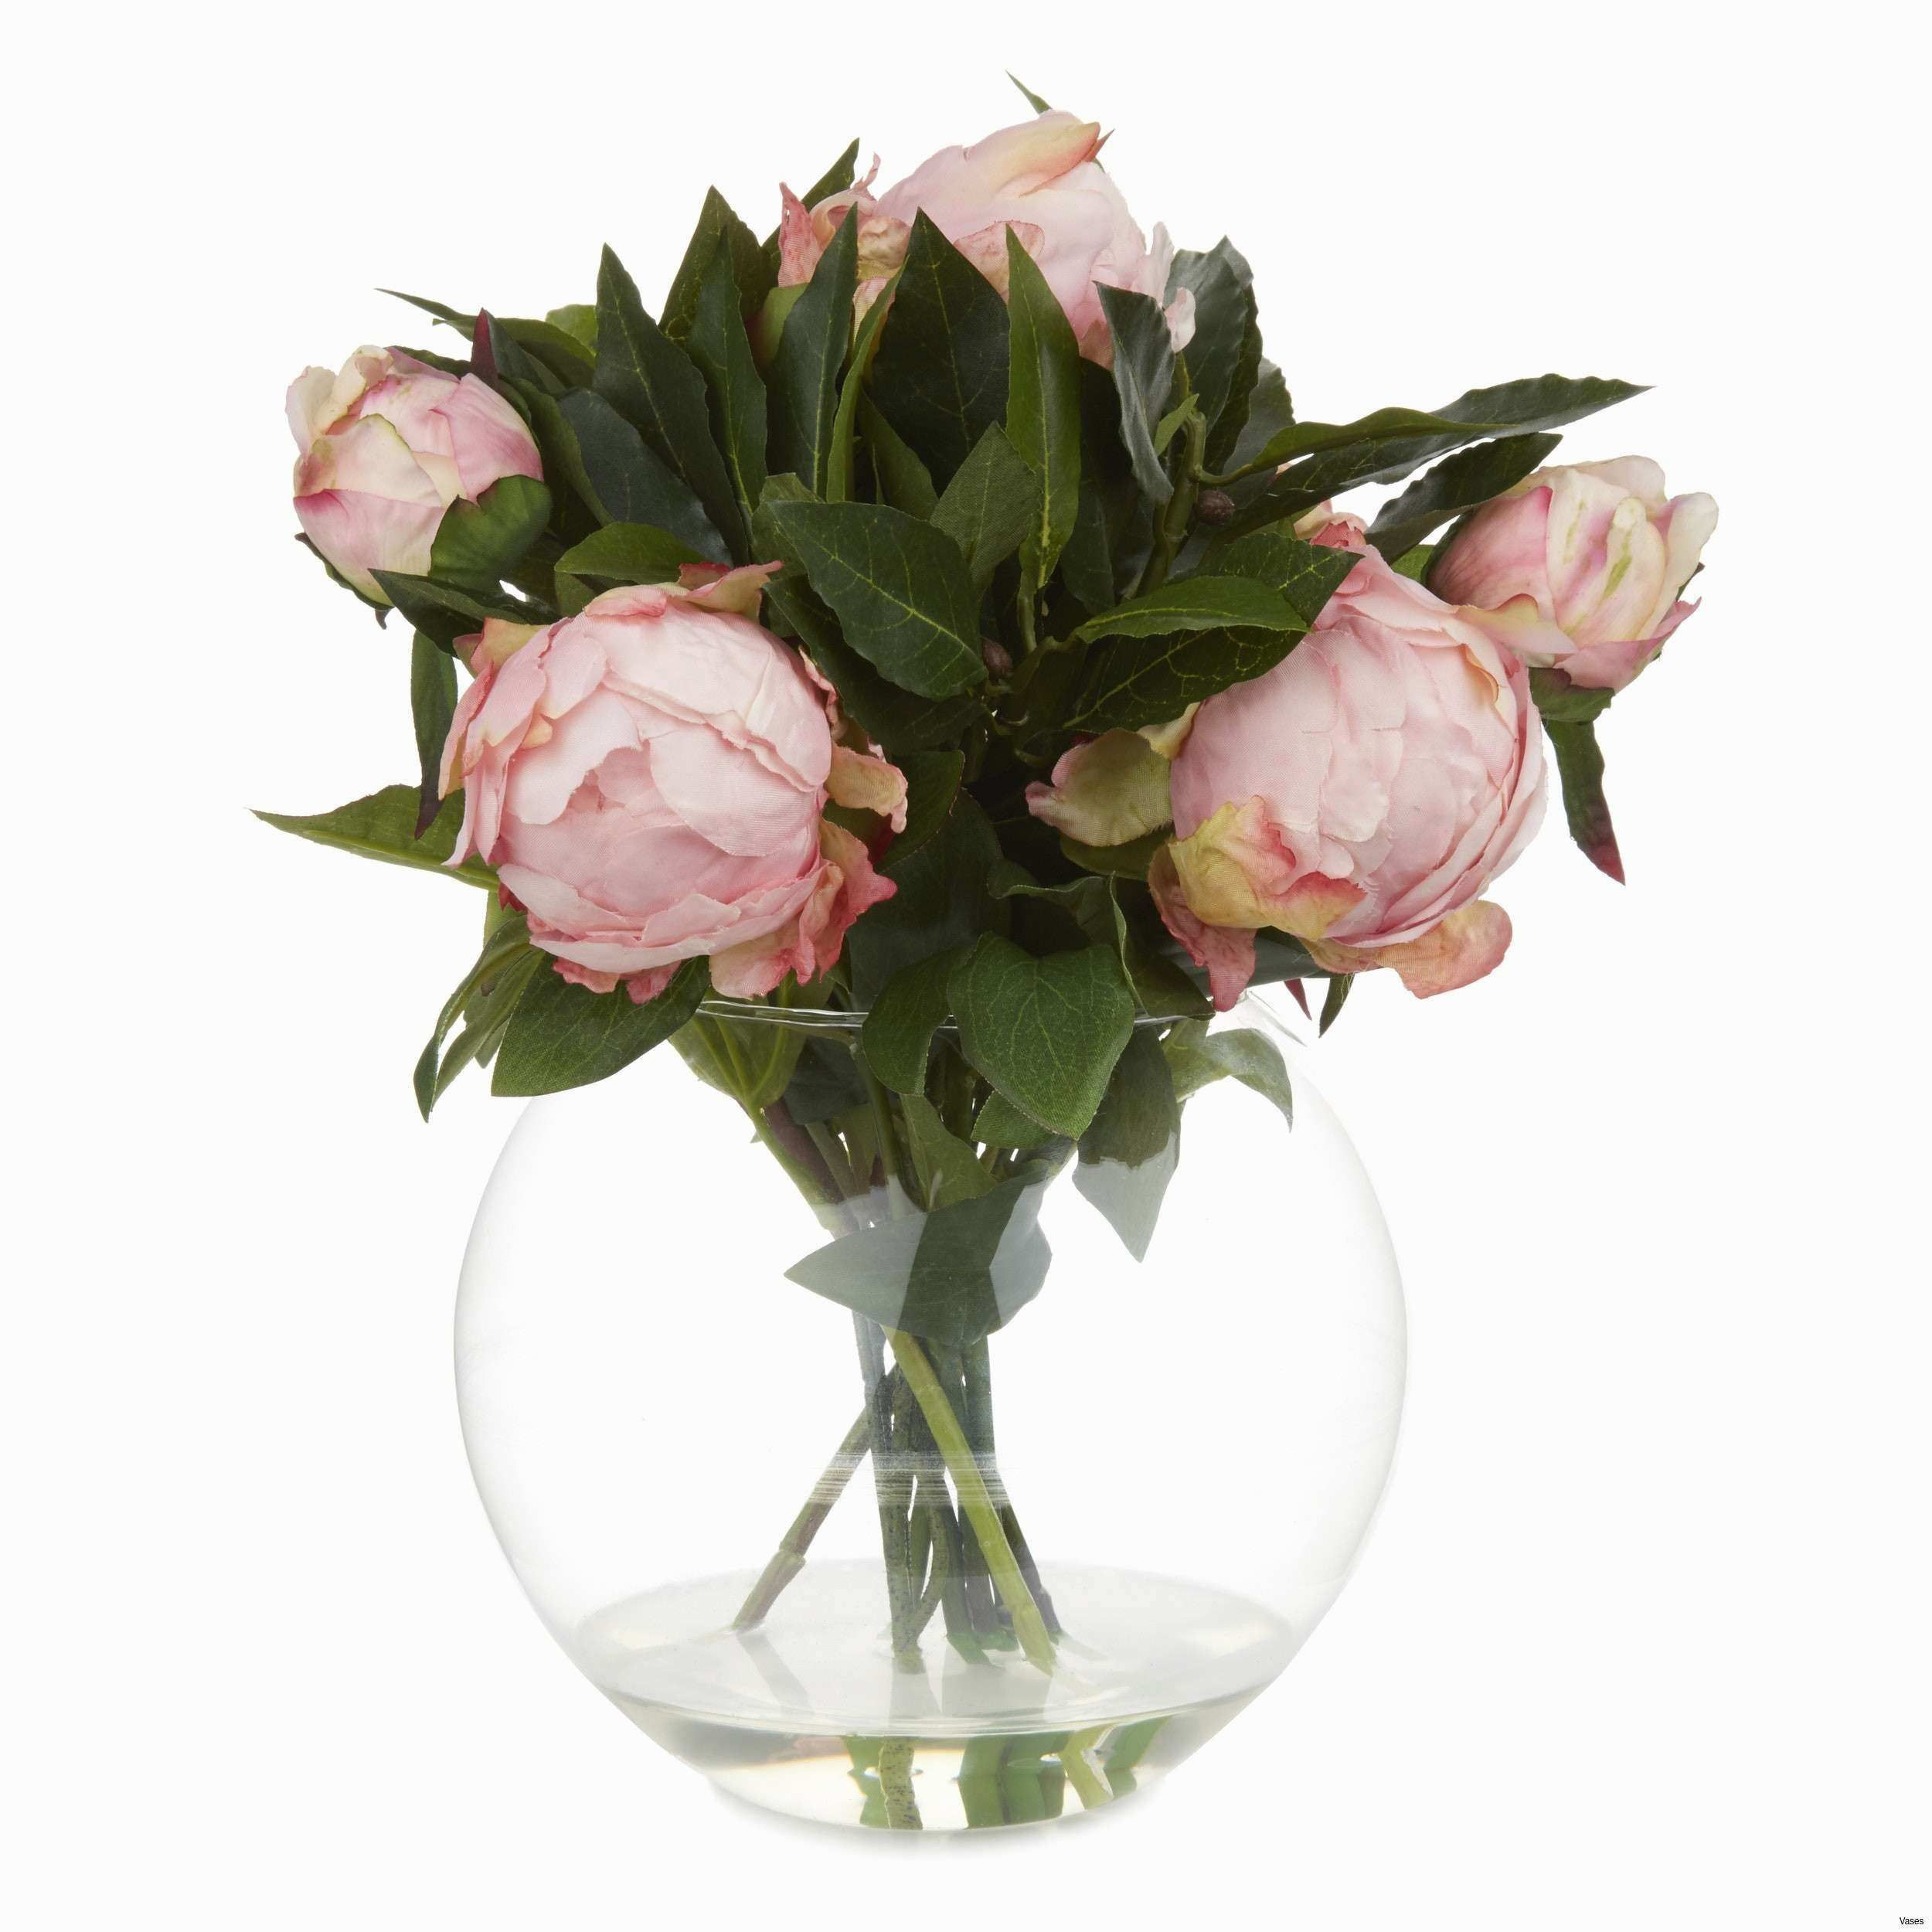 pink milk glass vase of 50 glass pedestal vase the weekly world pertaining to glass pedestal vase elegant 37 wonderful church flowers pedestal arrangements of glass pedestal vase